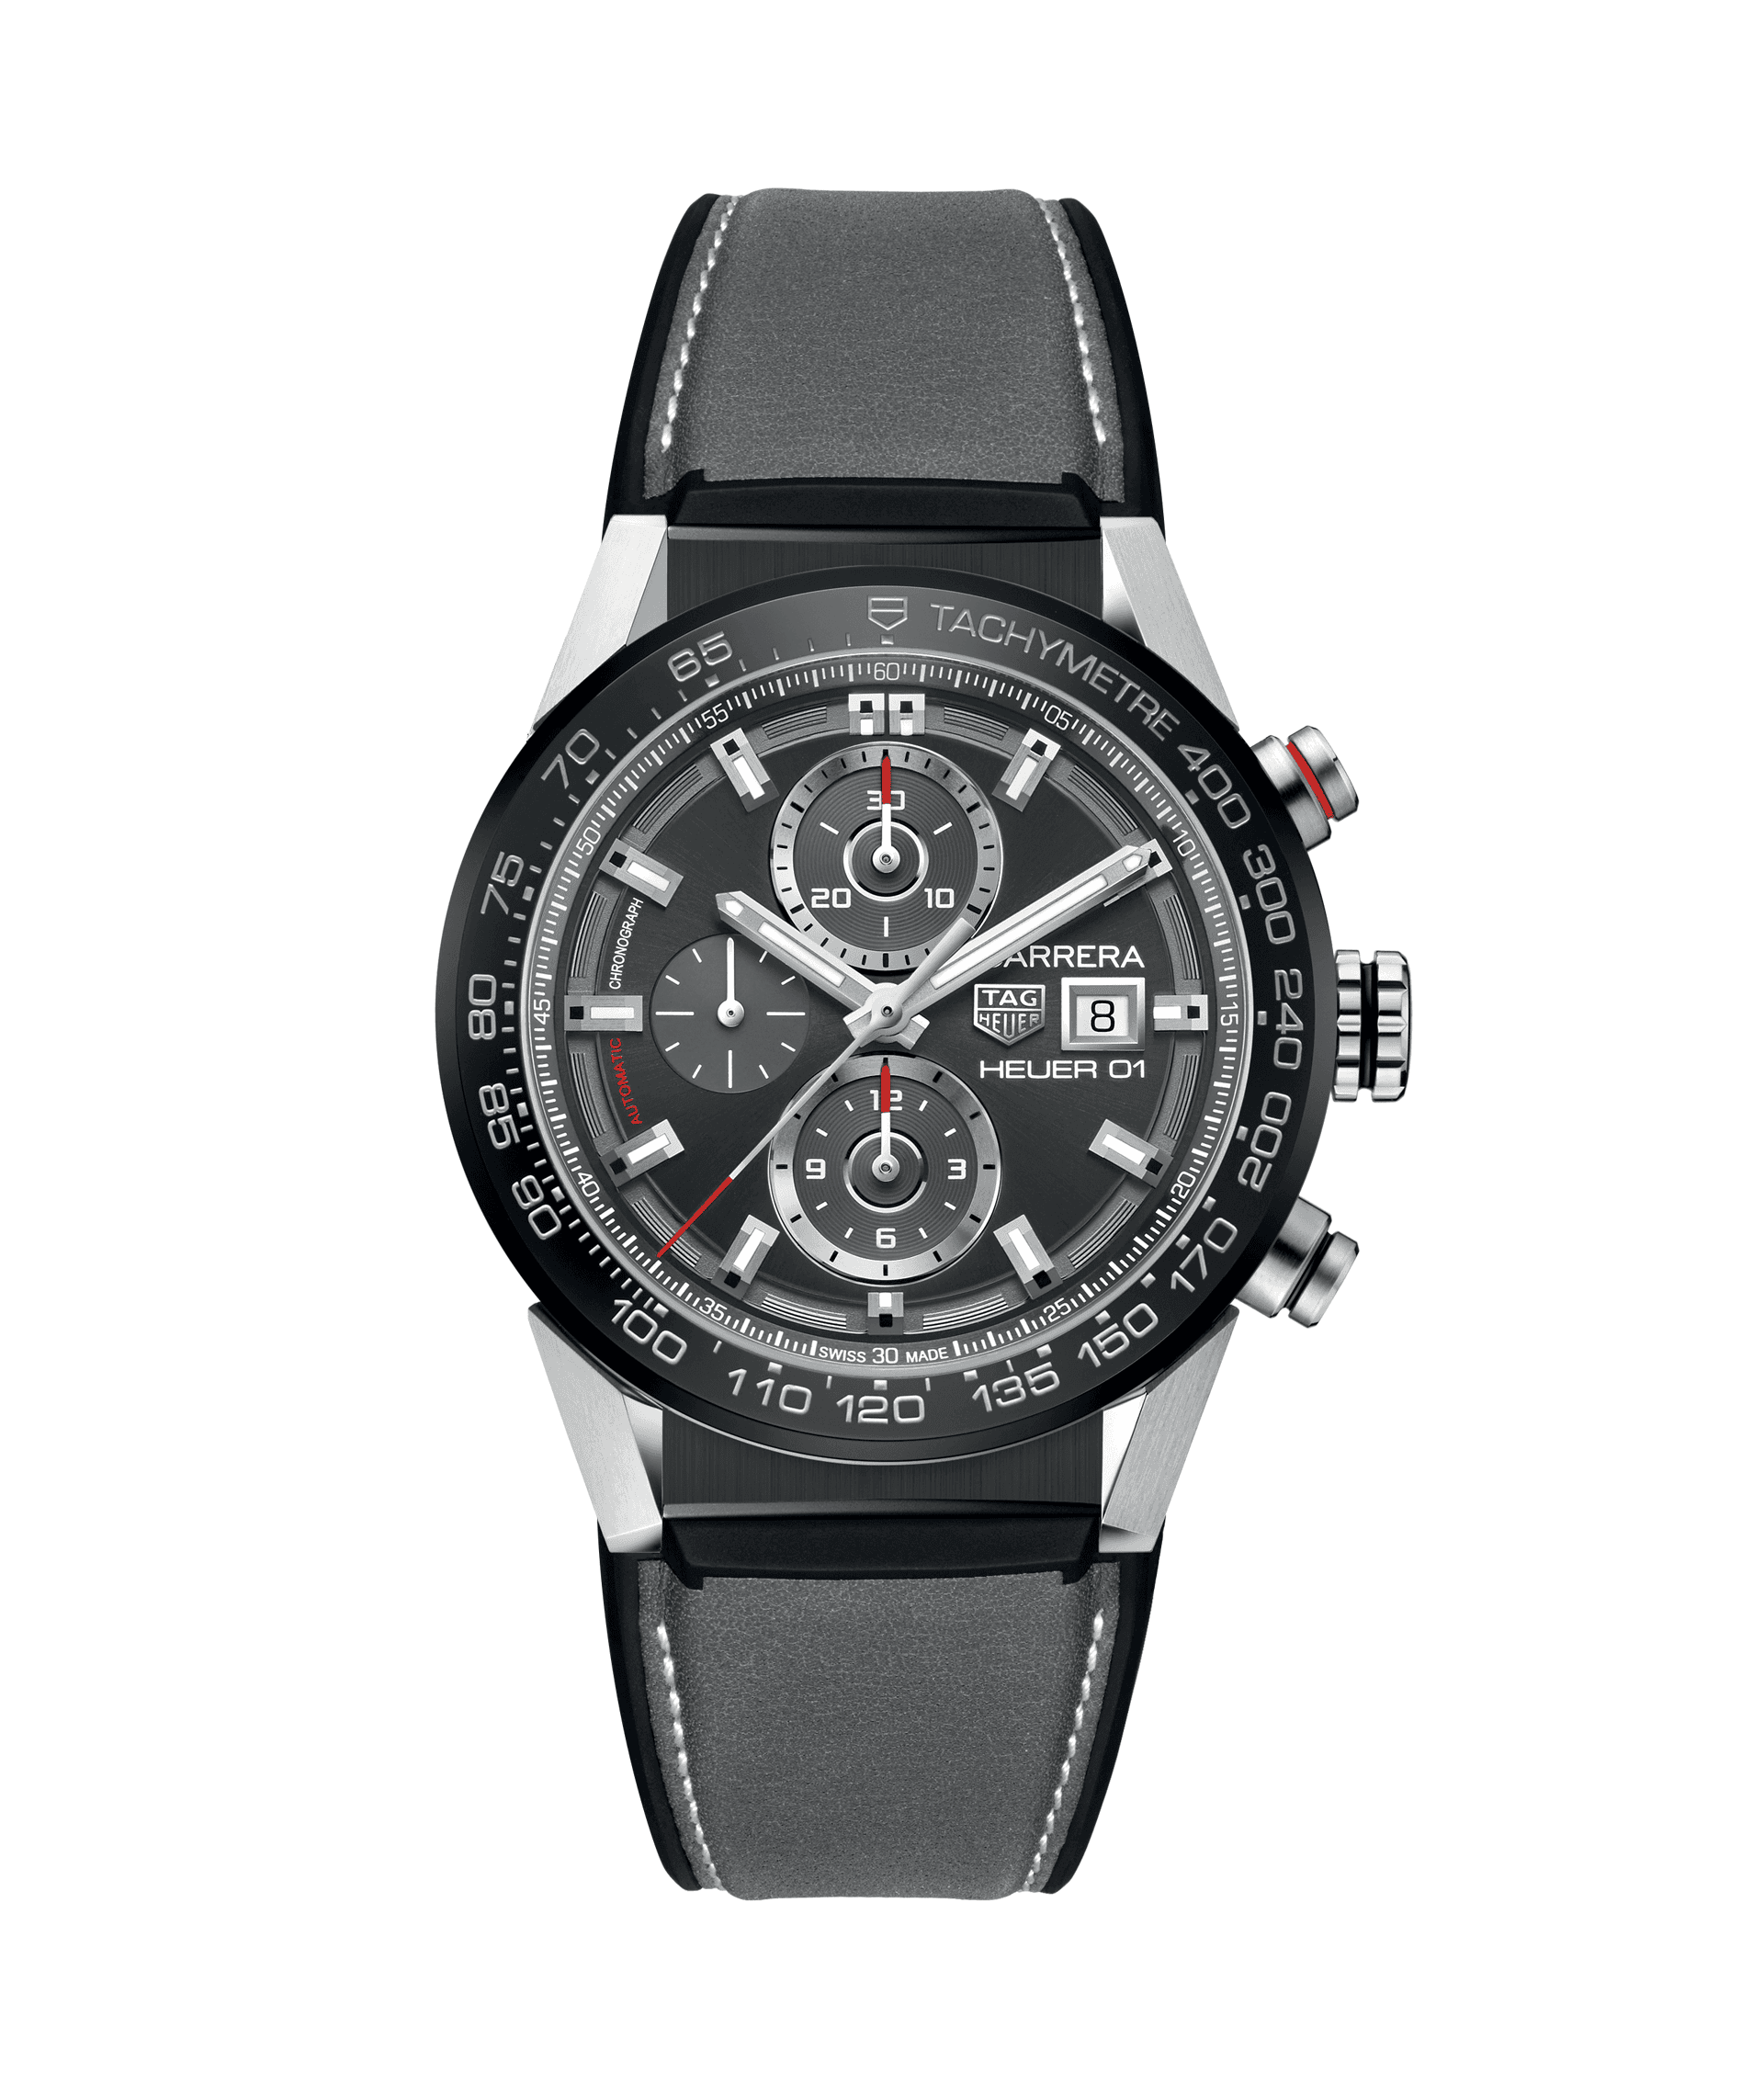 TAG HEUER CARRERA CALIBRE HEUER 01 100m - 43mm - CAR201W.FT6095